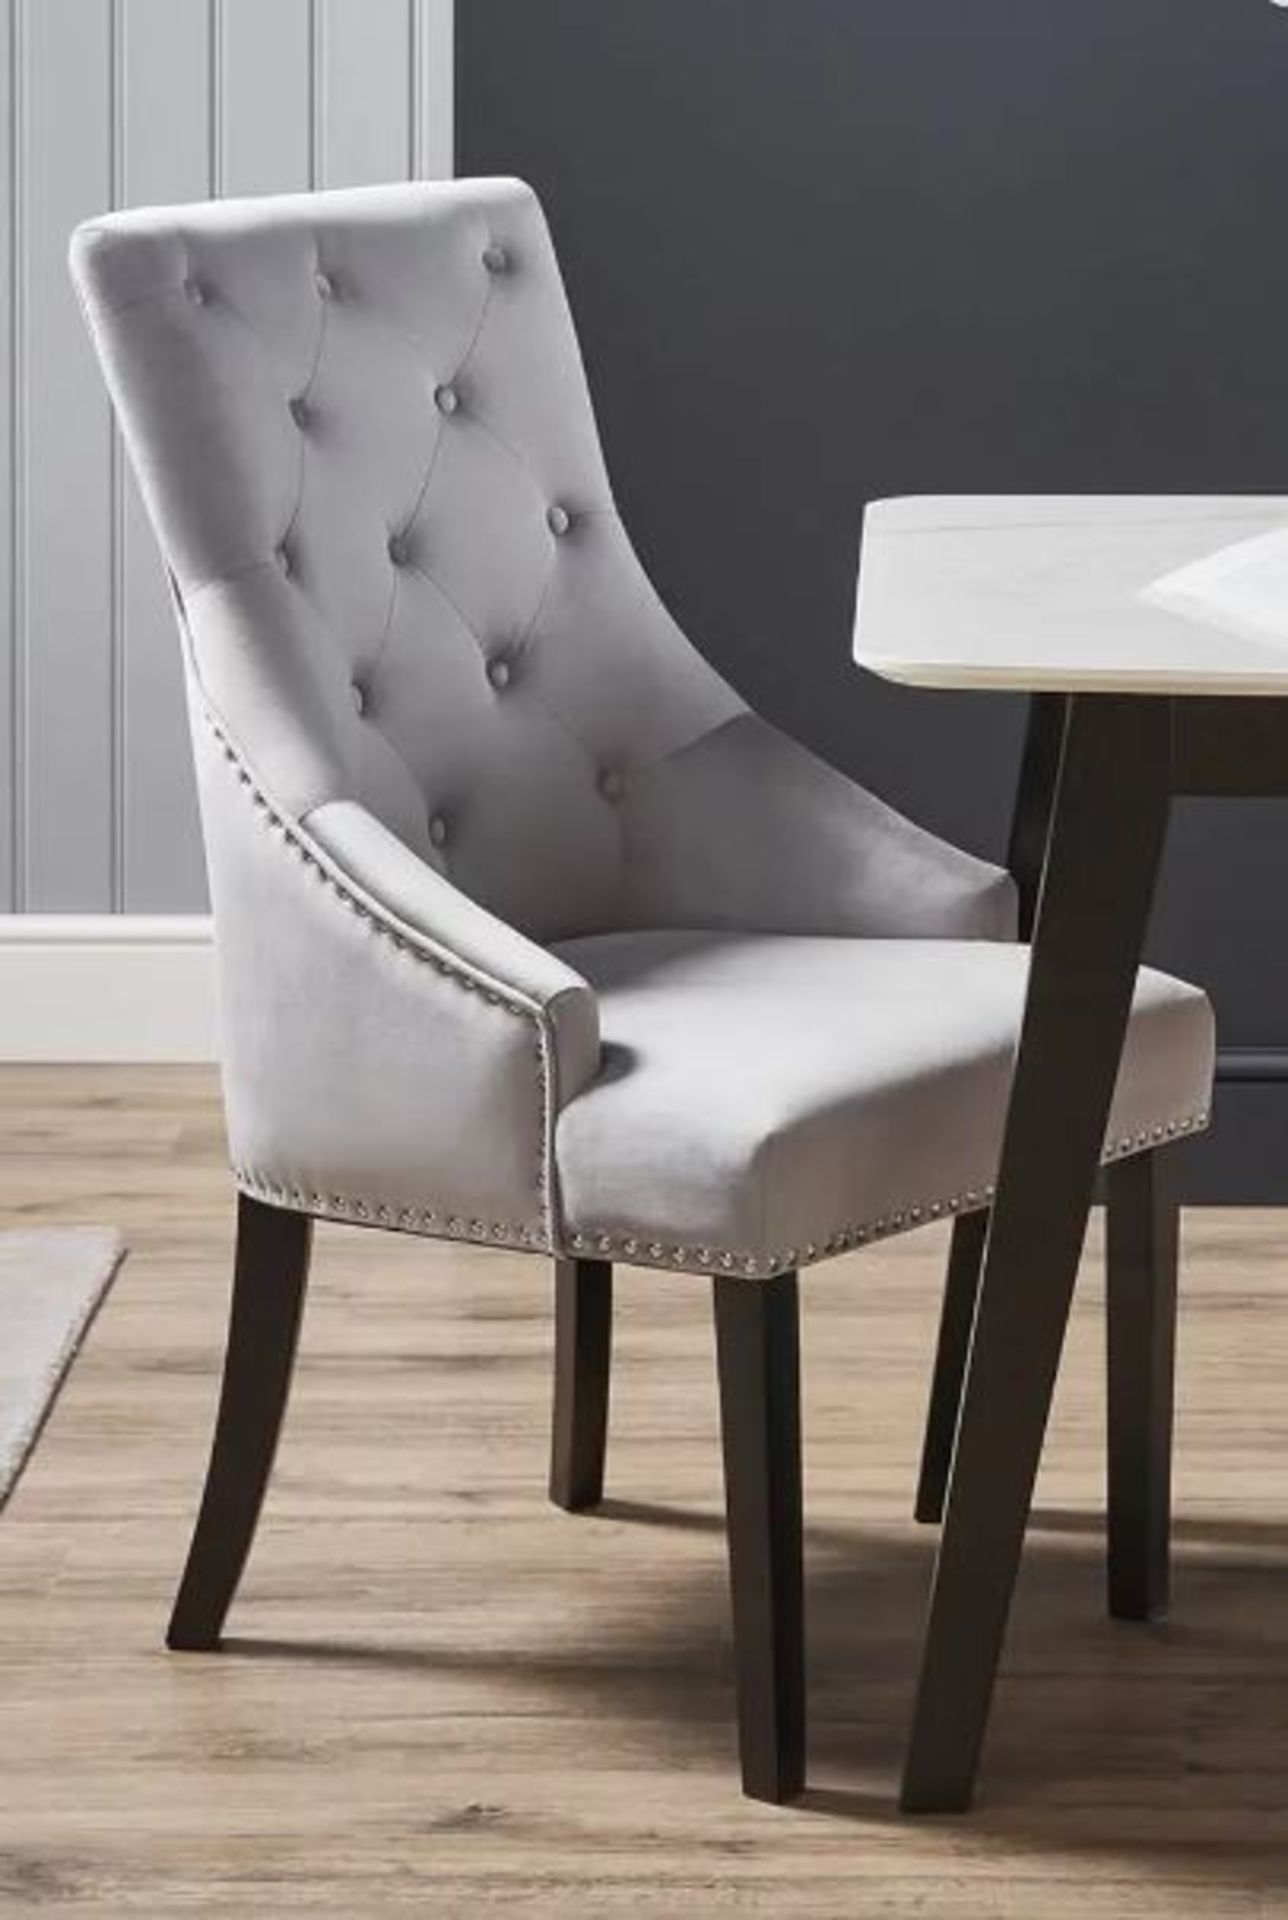 (3B) 2x Annabelle Velvet Ding Chairs Grey (RRP £150 When Complete). 1x With Legs & Loose Fixings. - Image 2 of 5